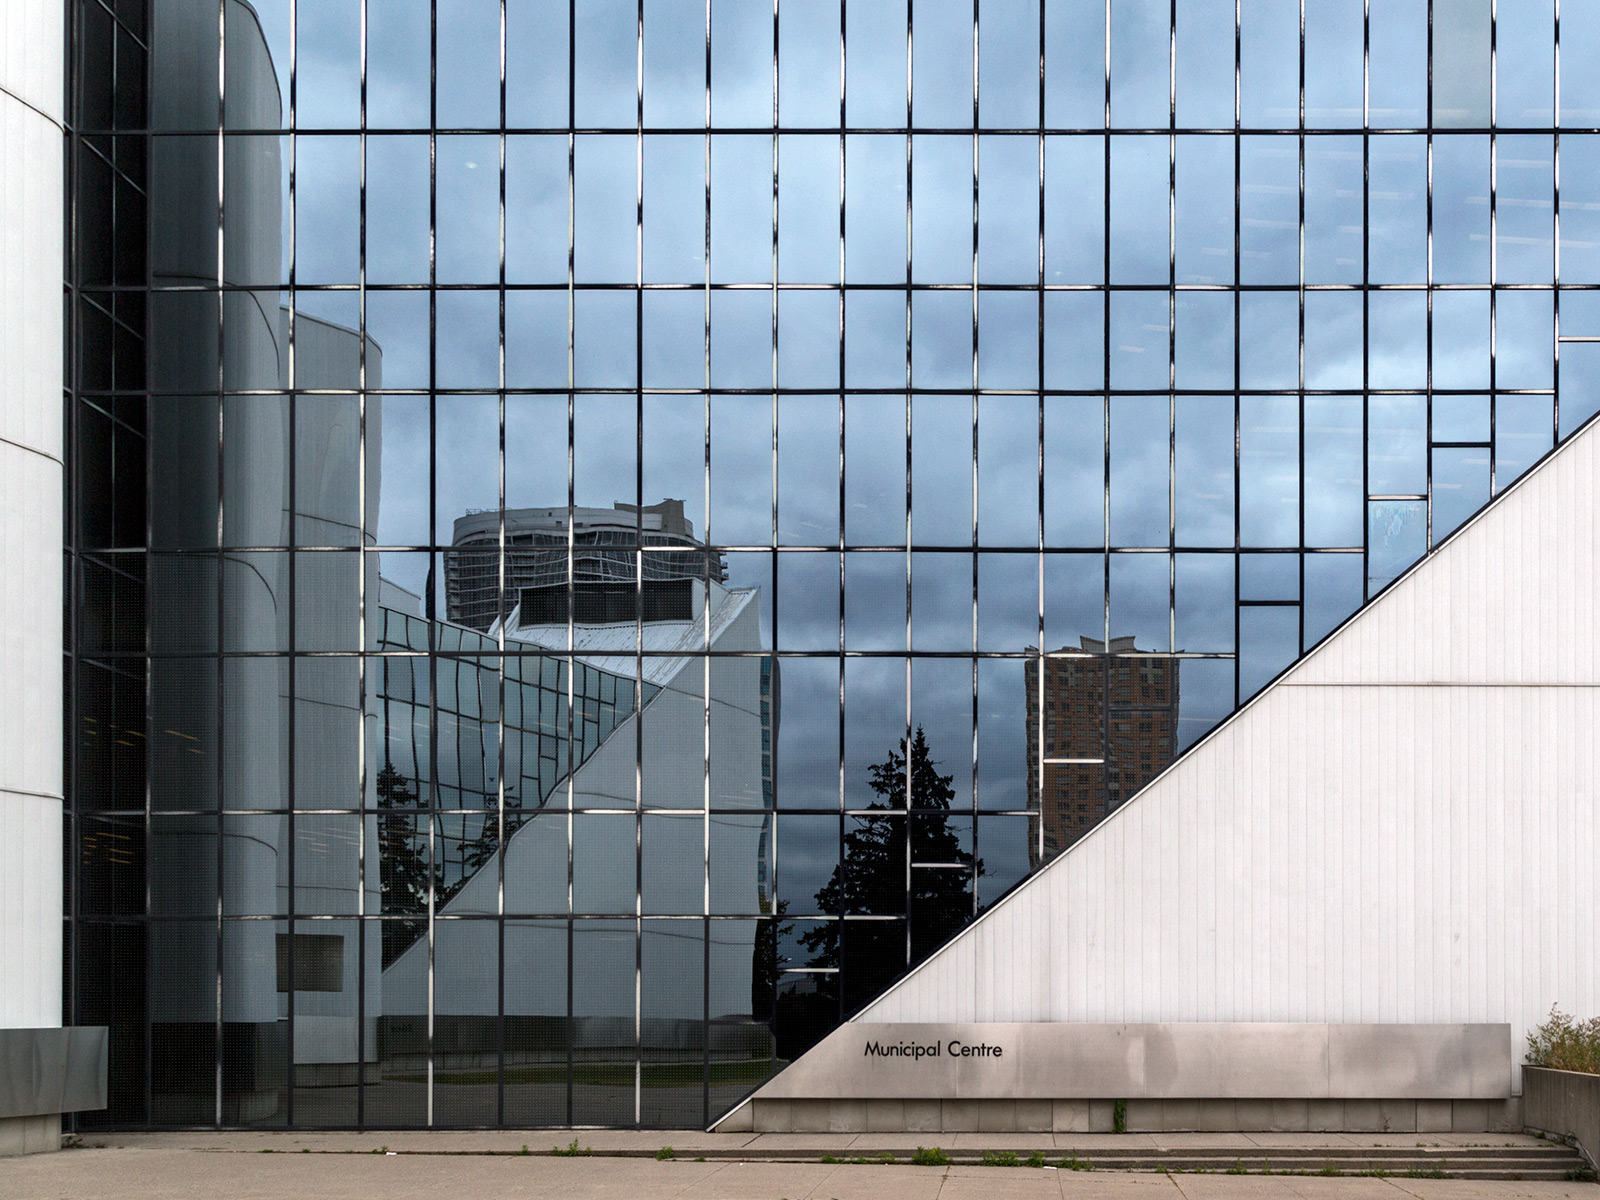 20151005. Scarborough Civic Centre self-reflection. Architect Ra